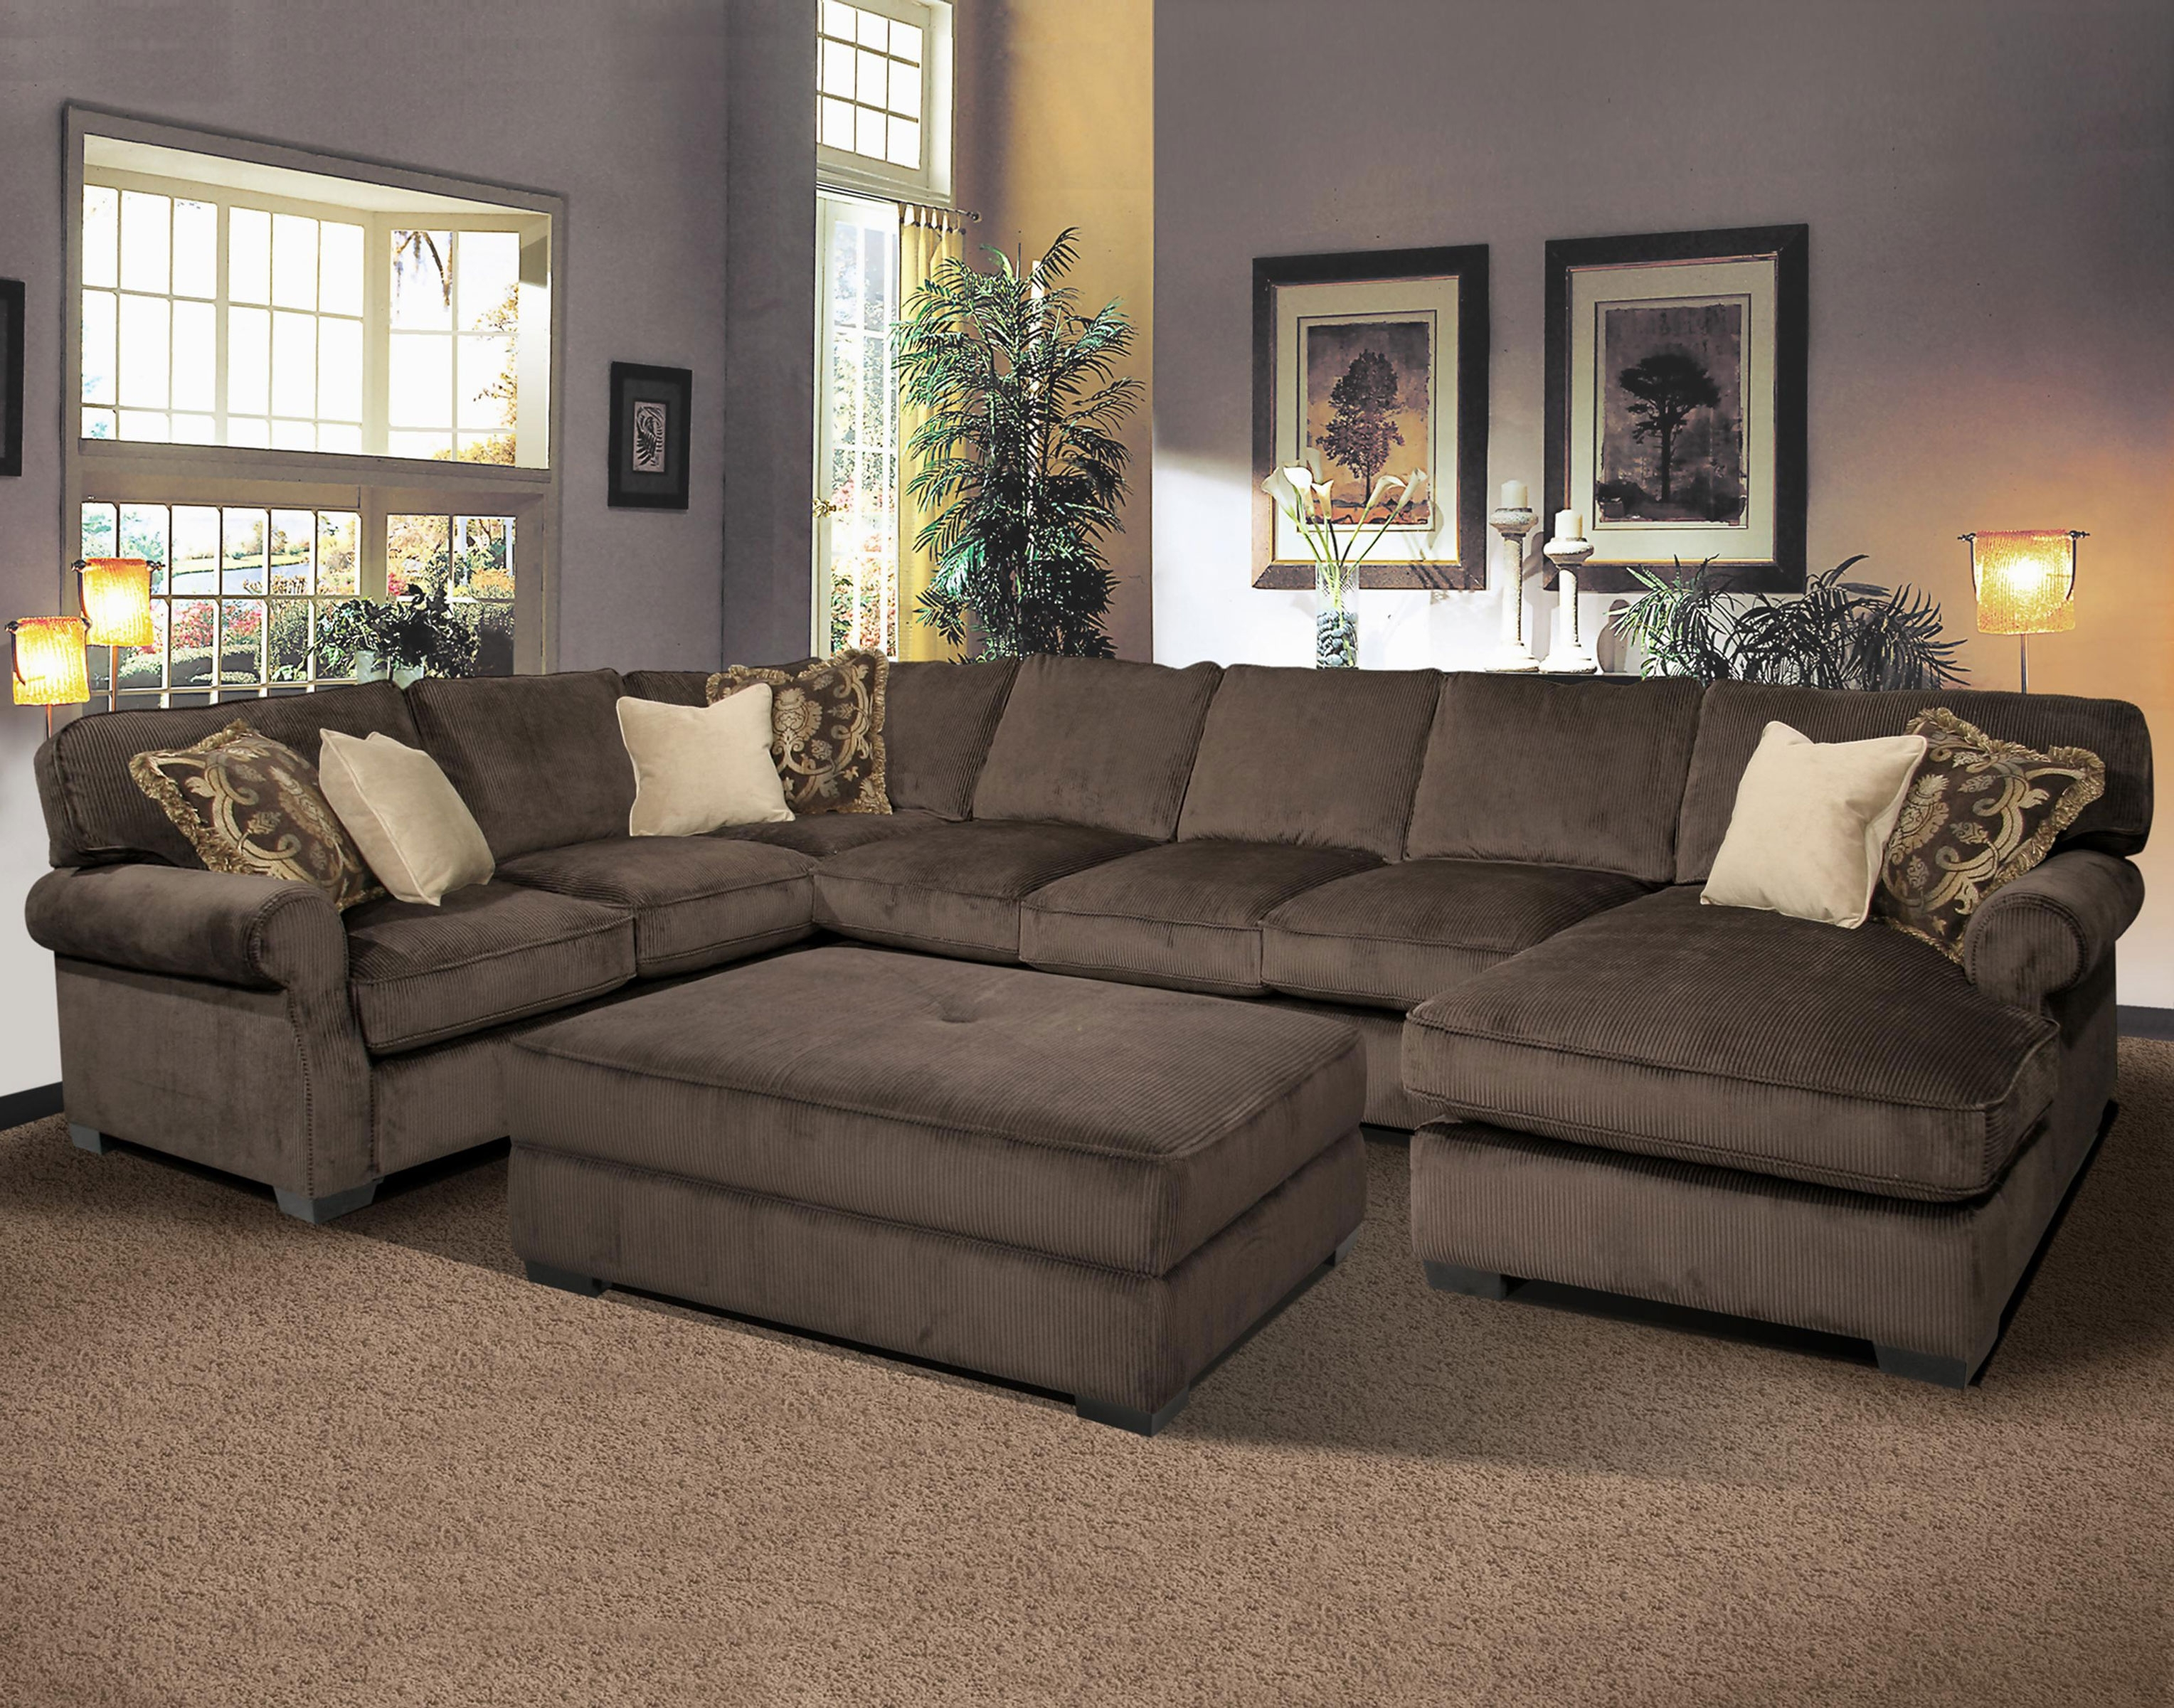 Sofas : Furniture Evansville Reclining Sofa Cloud Couch Home Regarding Most Popular Evansville In Sectional Sofas (View 17 of 20)